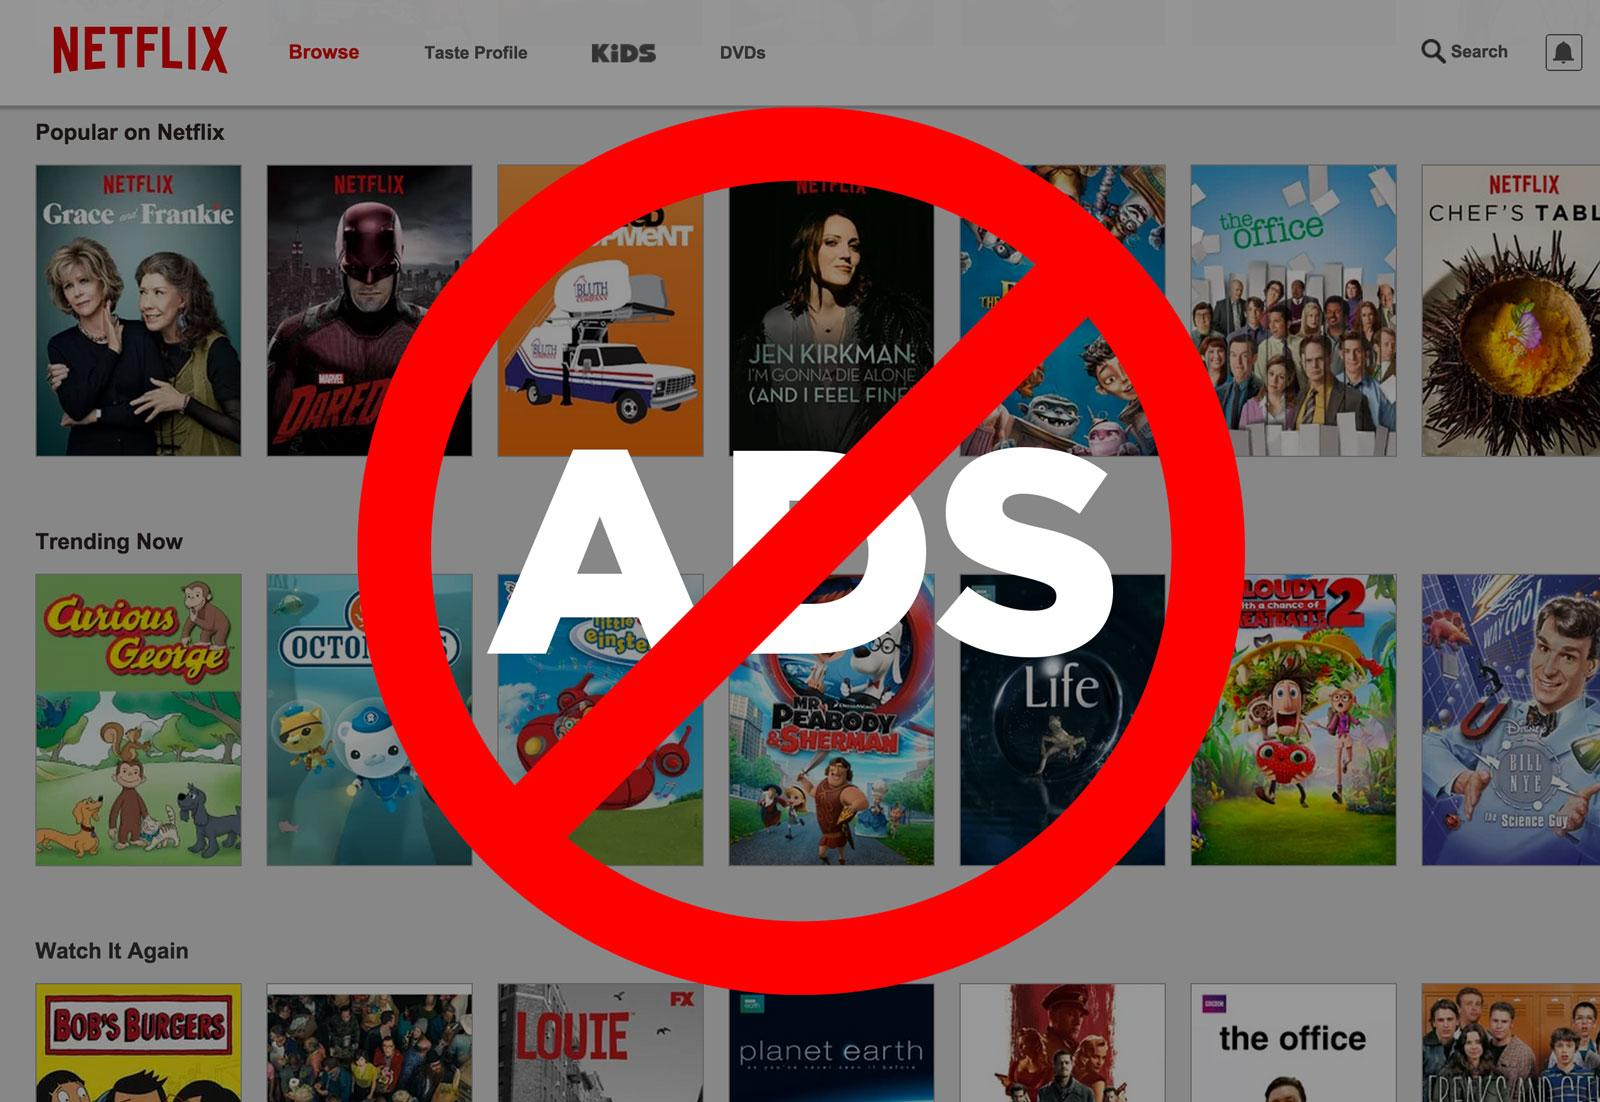 Netflix Tests Teasers For Original Programming, But Has No Plans To Run Third-Party Ads